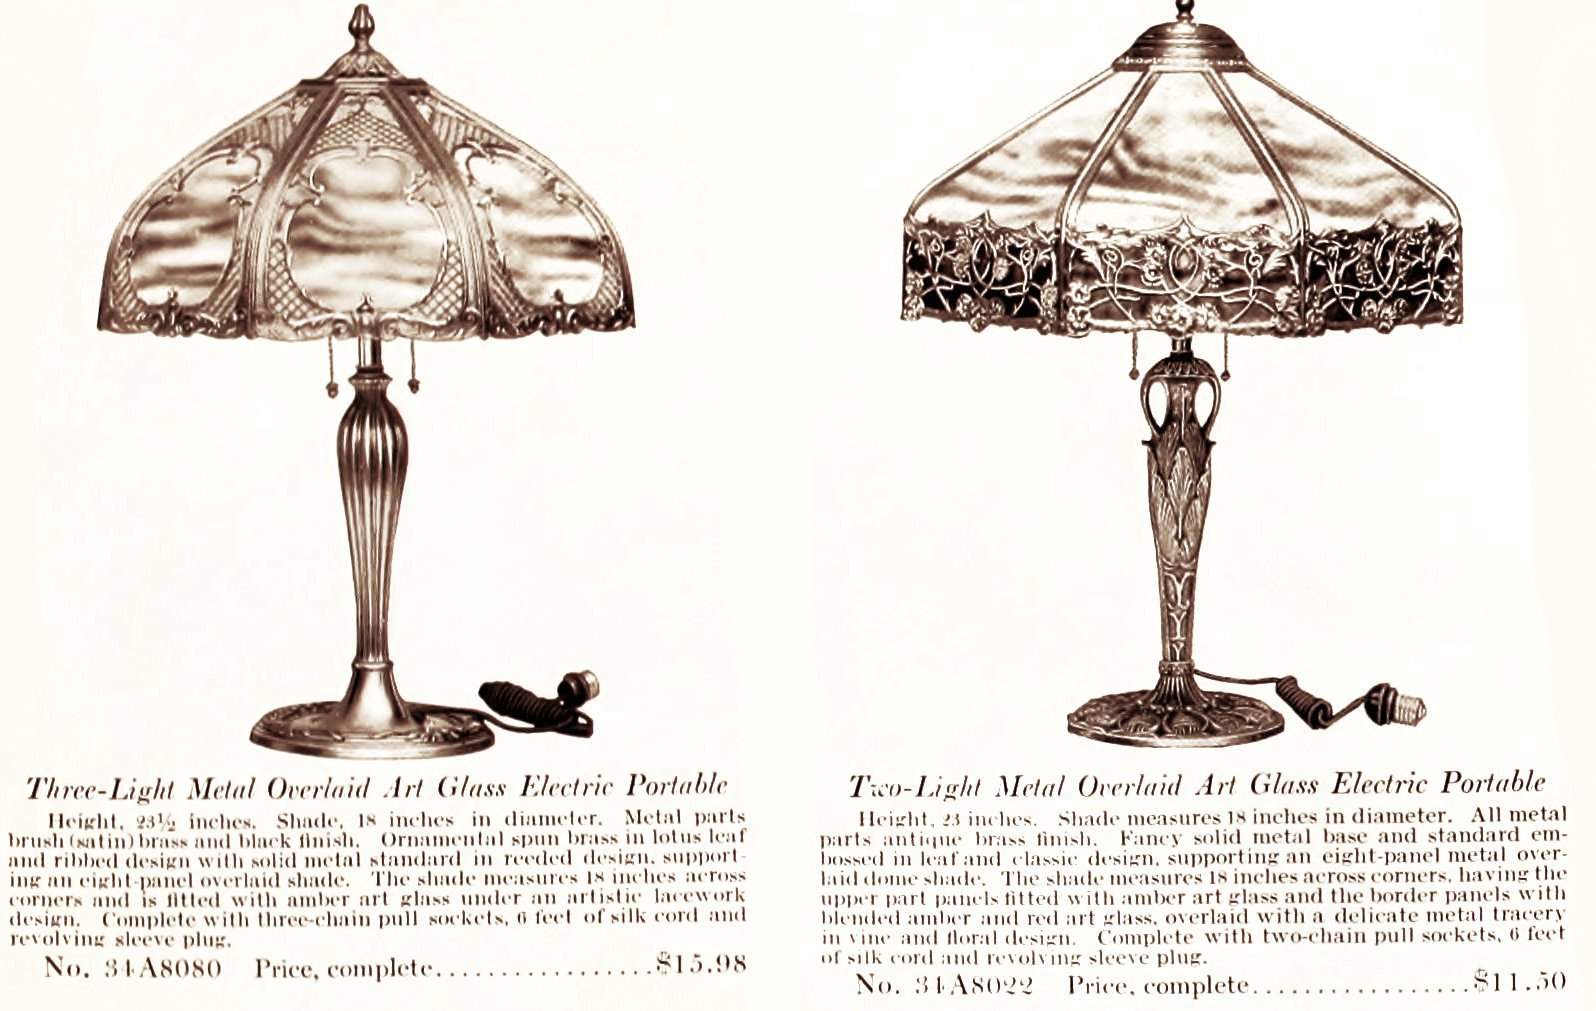 Art glass electric portable table lamps (early 1900s)